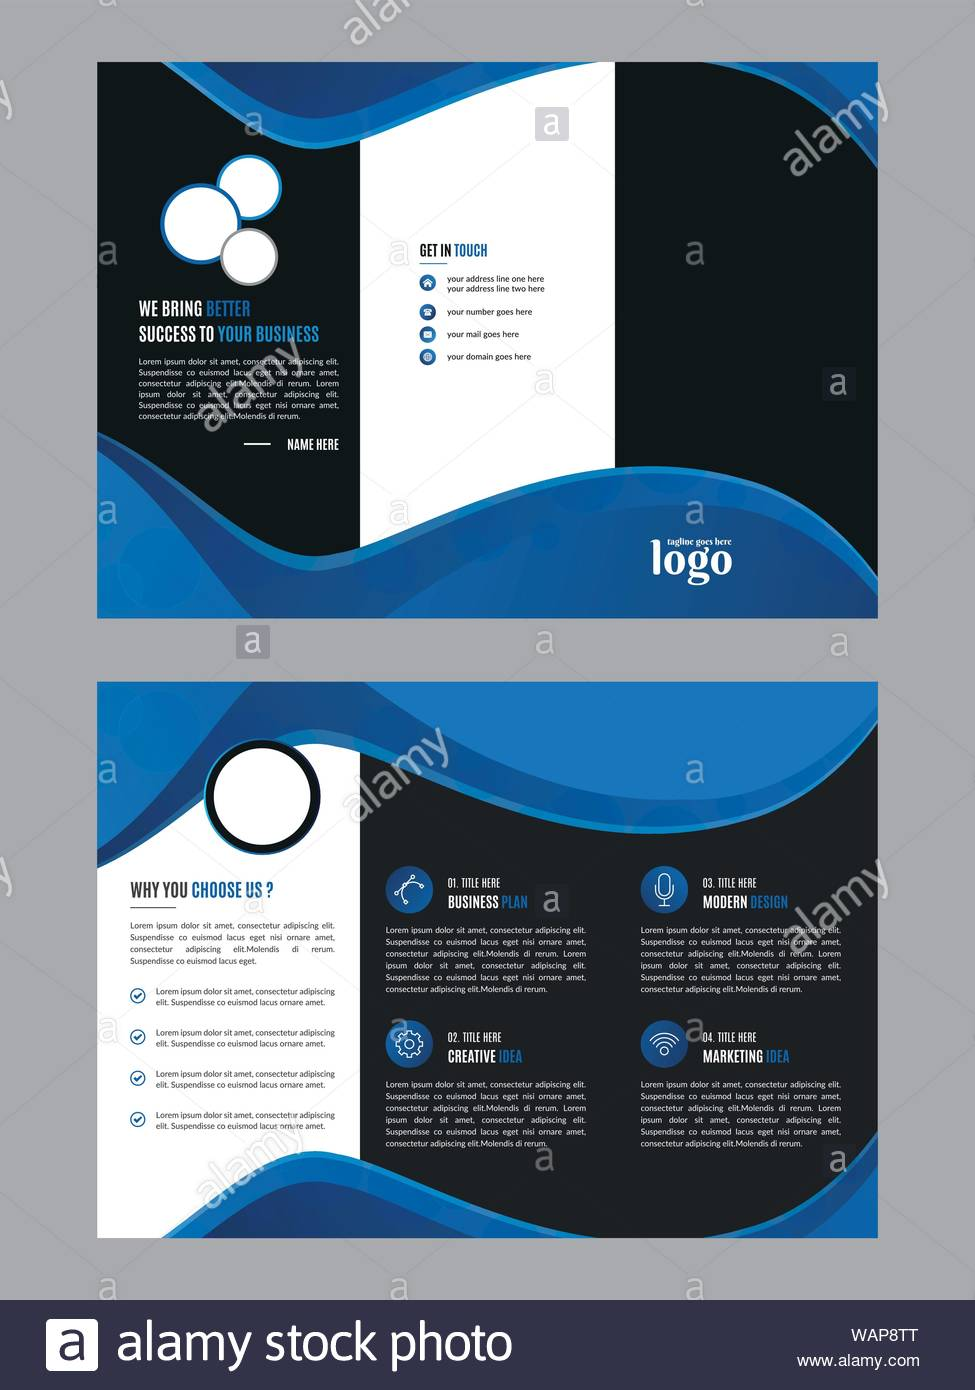 Trifold A4 Template Stock Photos & Trifold A4 Template Stock